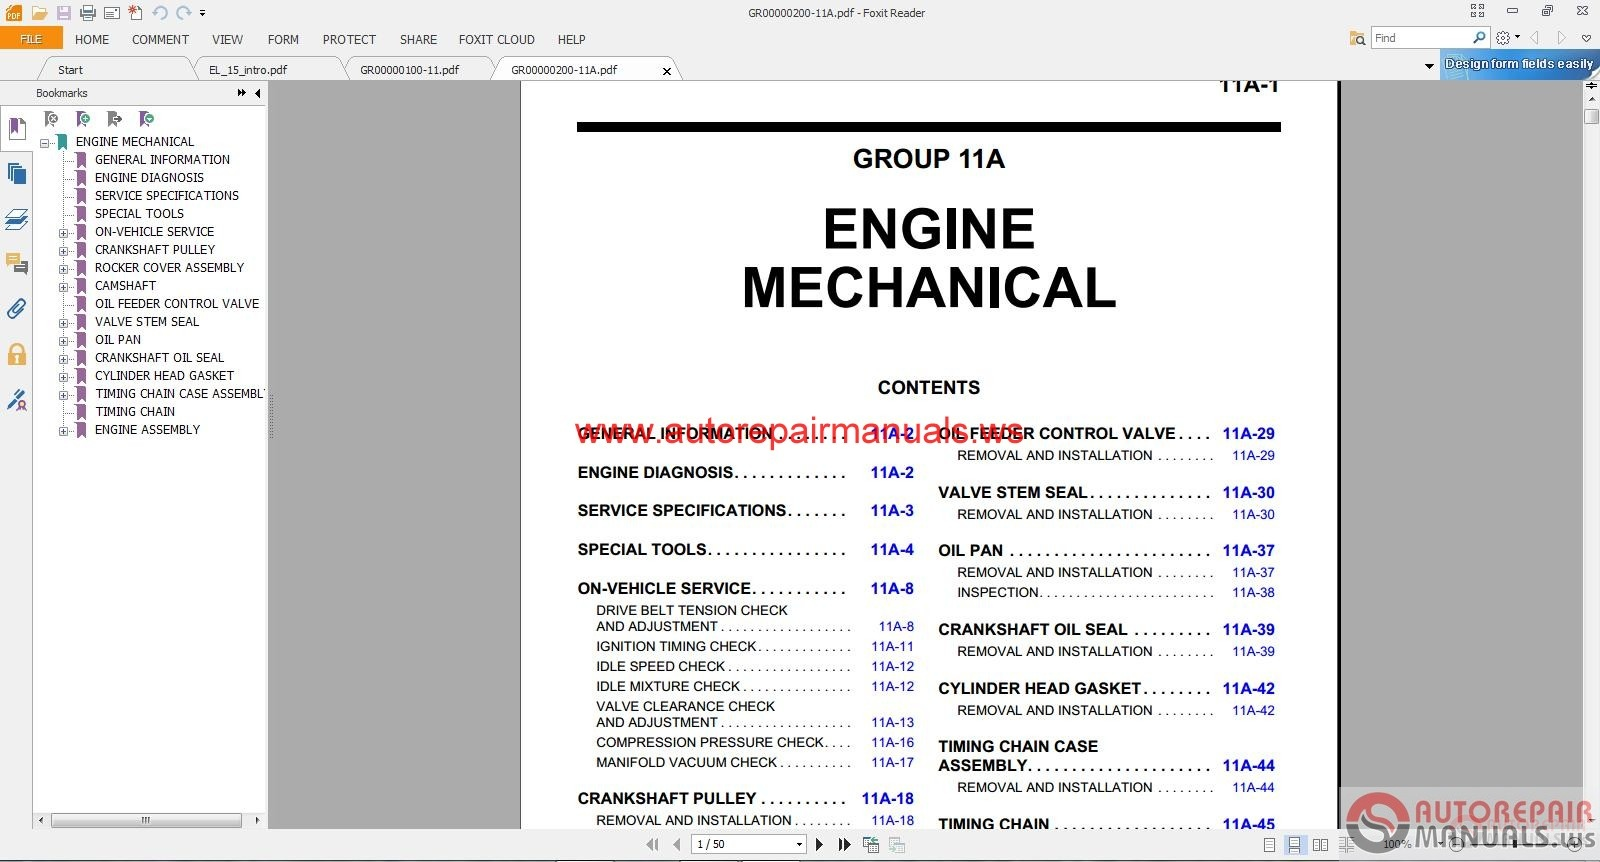 Mitsubishi_Mirage_2015_Workshop_Manual3 mitsubishi mirage 2015 workshop manual auto repair manual forum mitsubishi lancer wiring diagram free download at virtualis.co